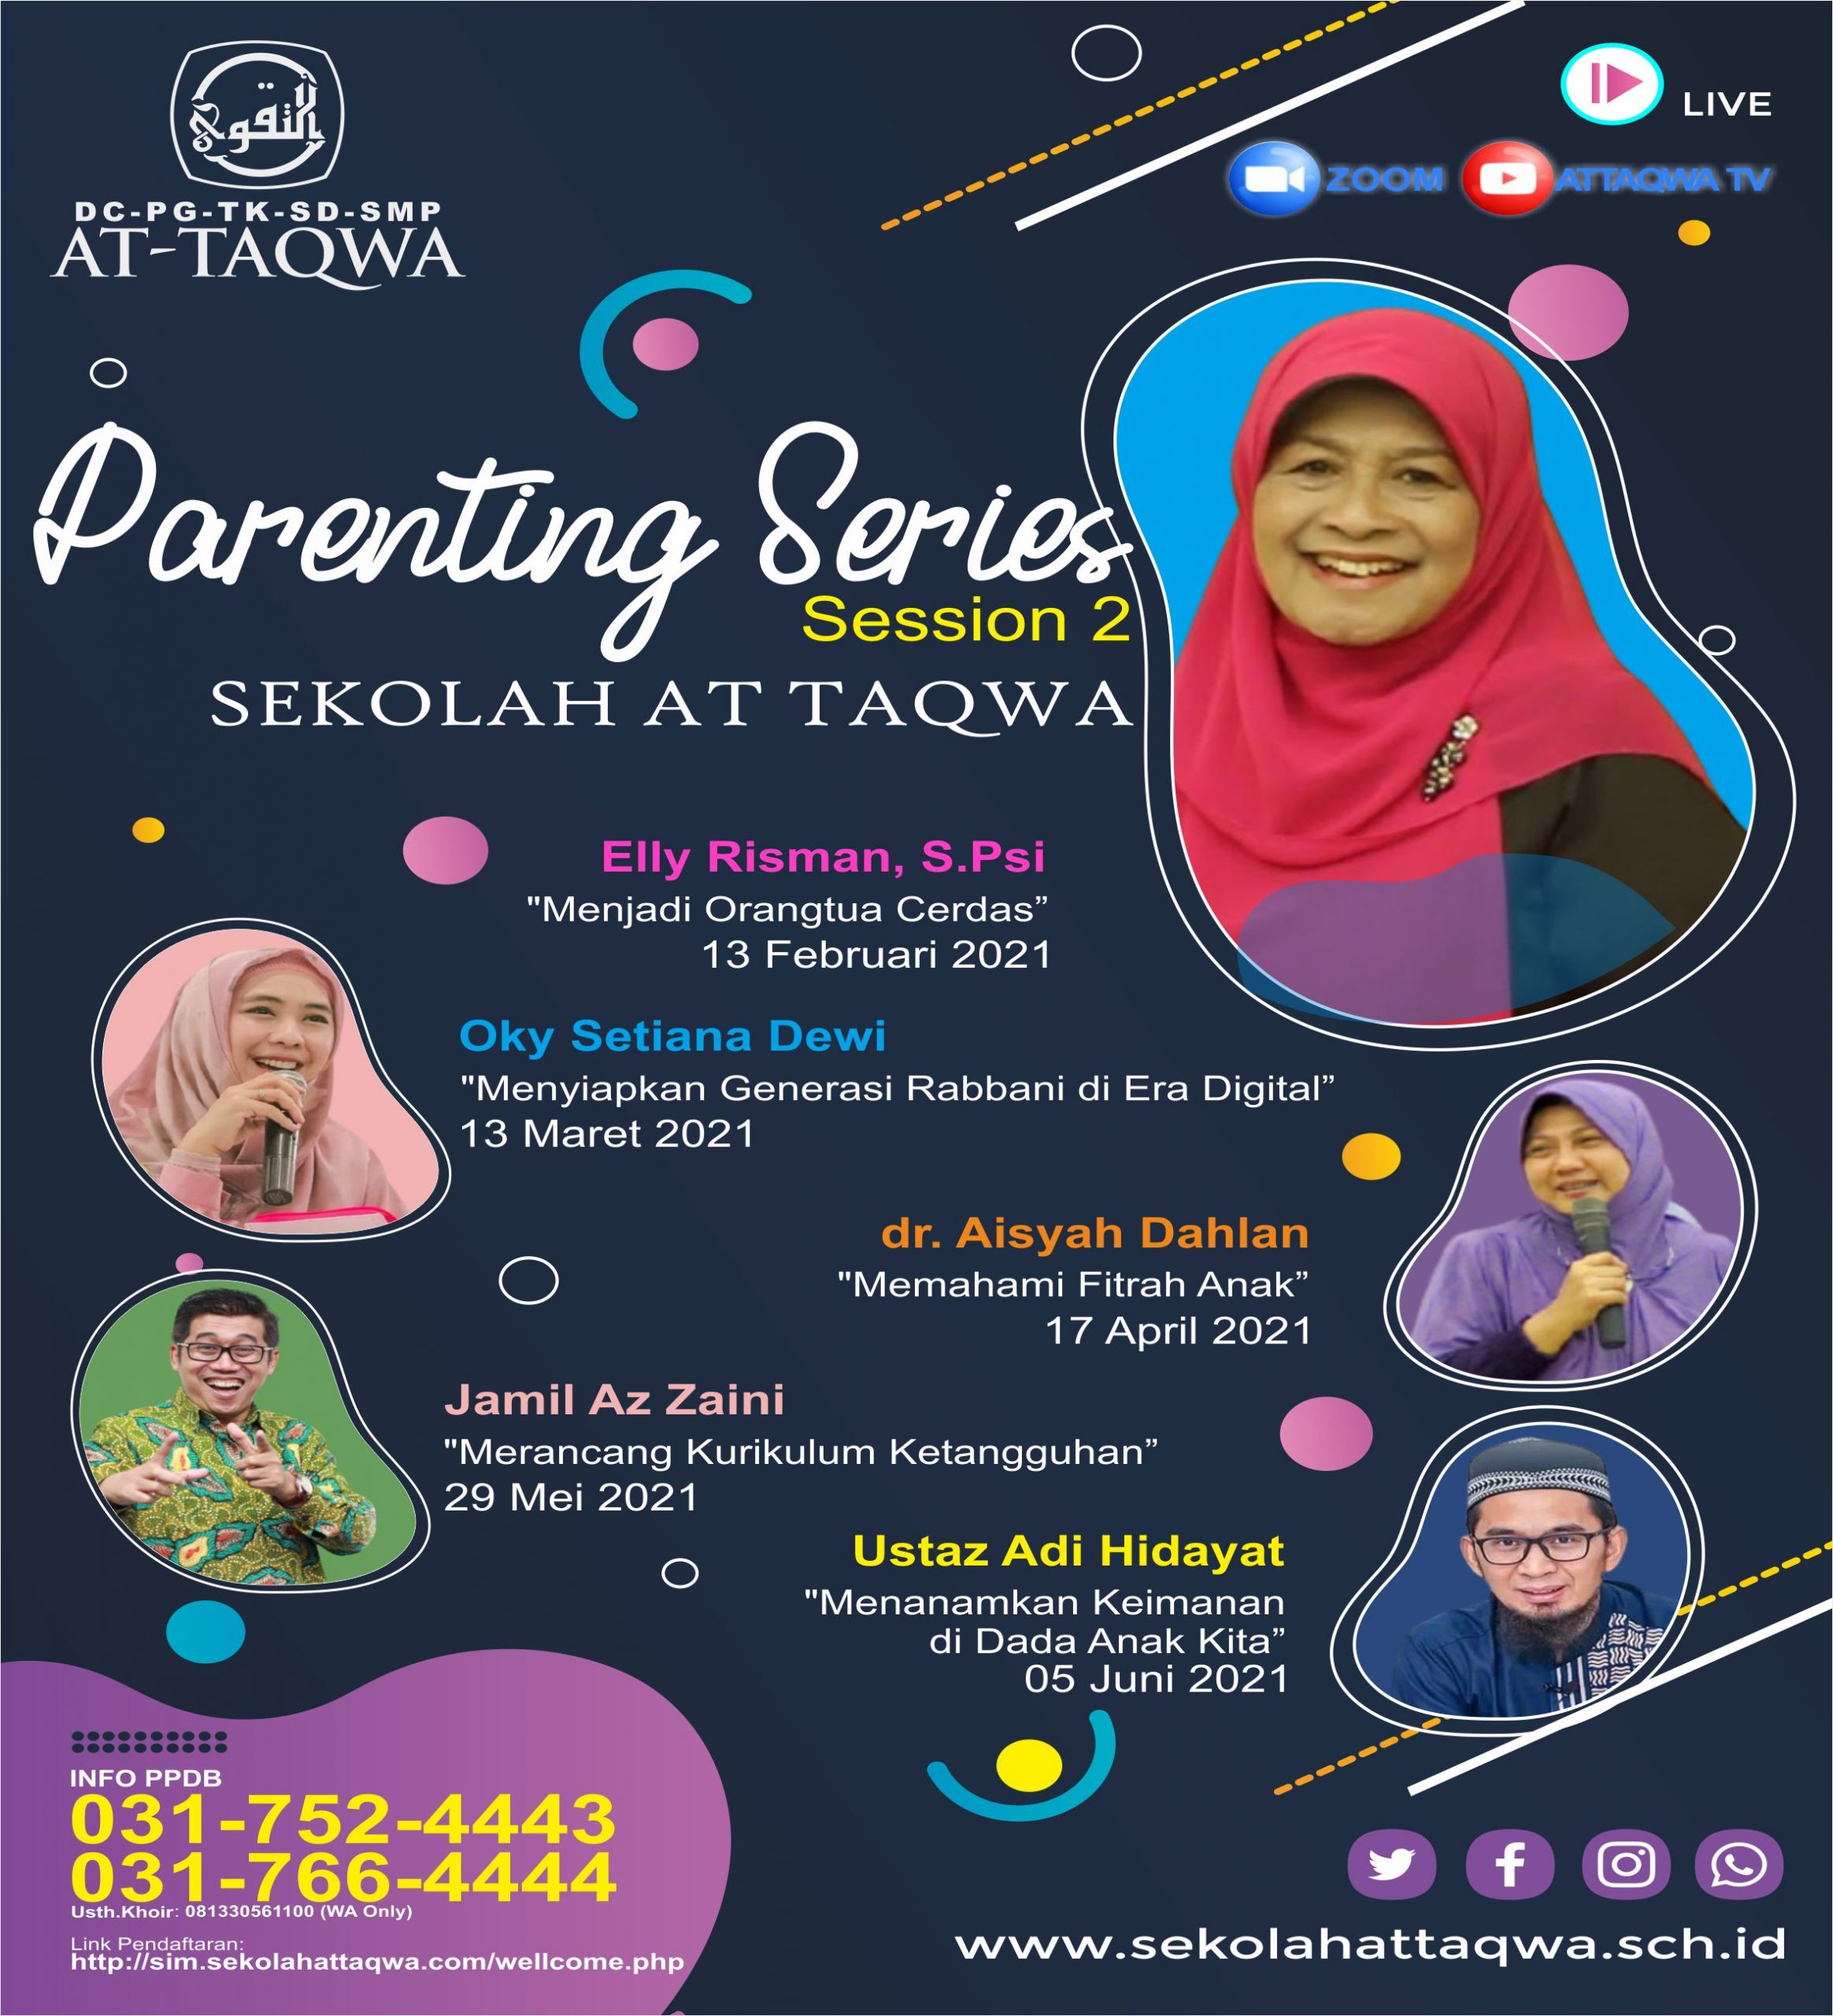 PARENTING SERIES Session 2